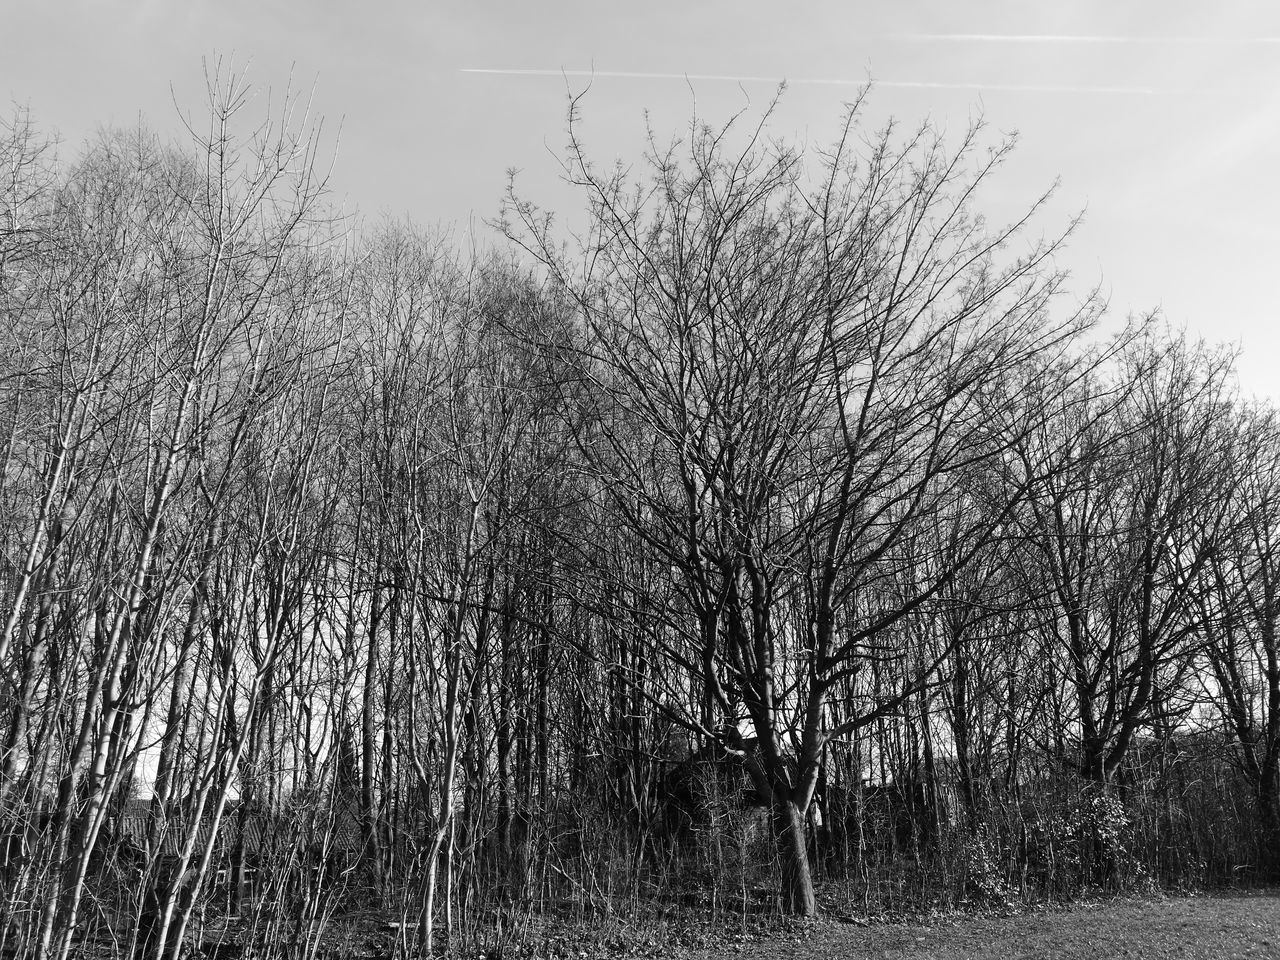 Nudetress Sky No People Nature Day Spring2017 Sønderborg HuaweiP9 Monochrome Photography Clouds Denmark